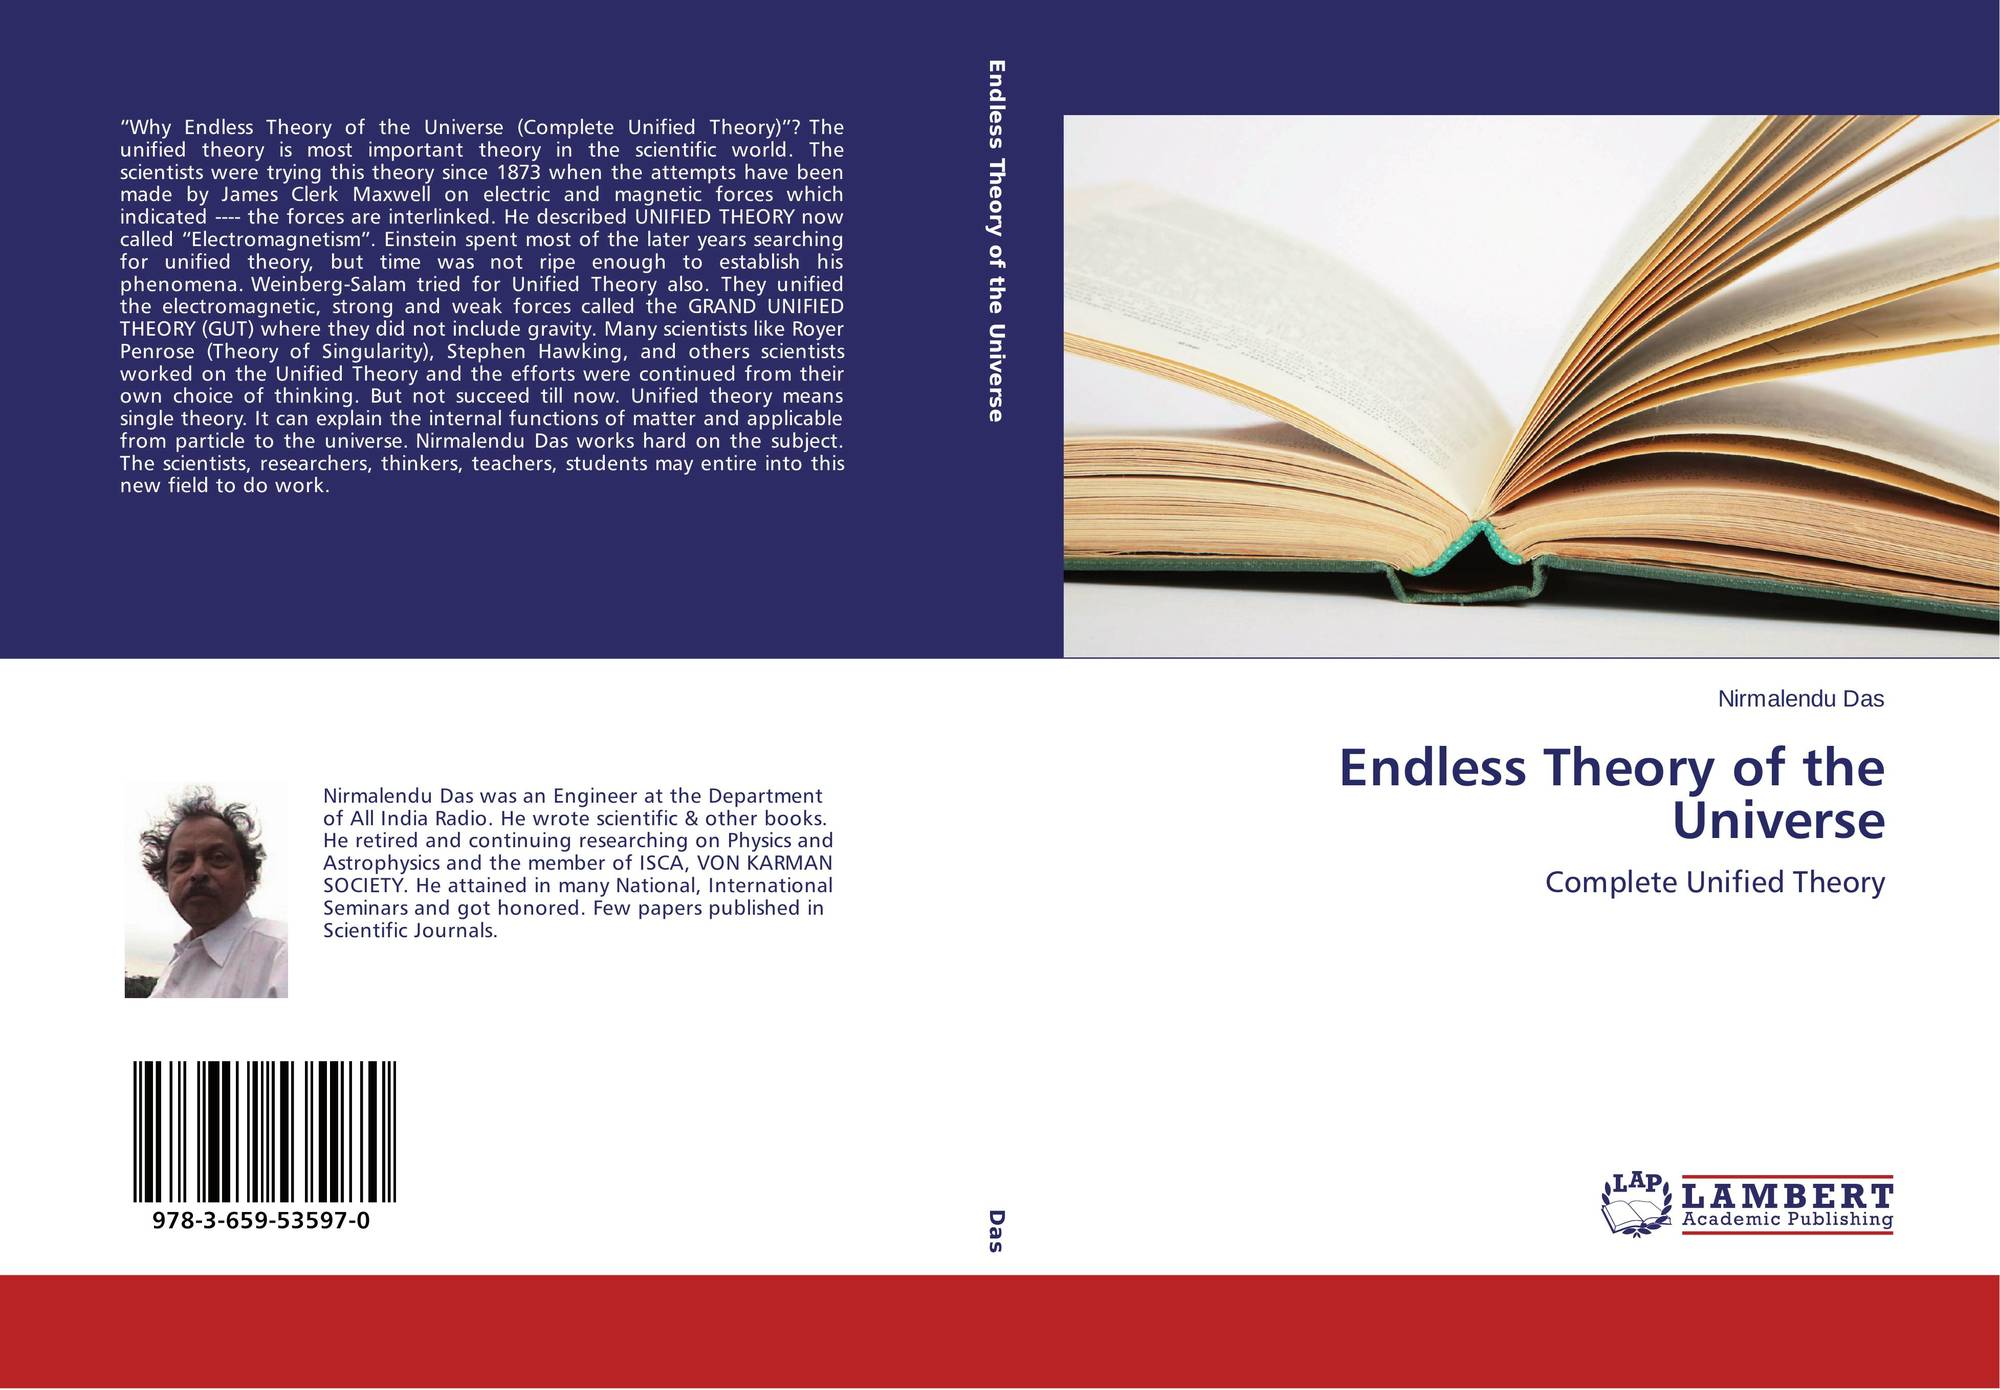 international management and global theory of General ir concentrators can minor in an ir area or policy area (conflict management, global theory and history, international law and organizations, international political economy, energy, resources, and environment, or strategic studies) by completing 2 additional area/policy courses (8 credits) beyond the 1 used toward the concentration.